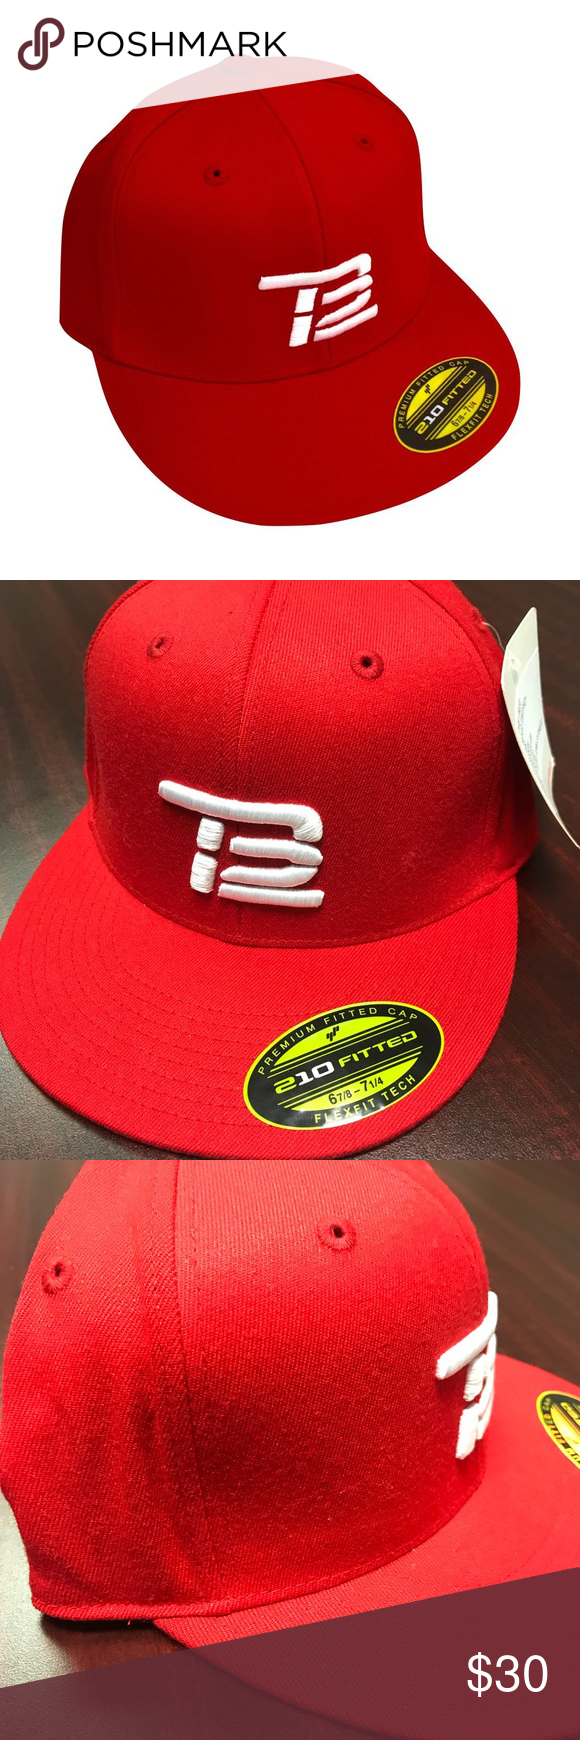 19e3baefd268b NFL Patriots TB12 Tom Brady Red Fitted Cap For sale is a Size Fitted ...